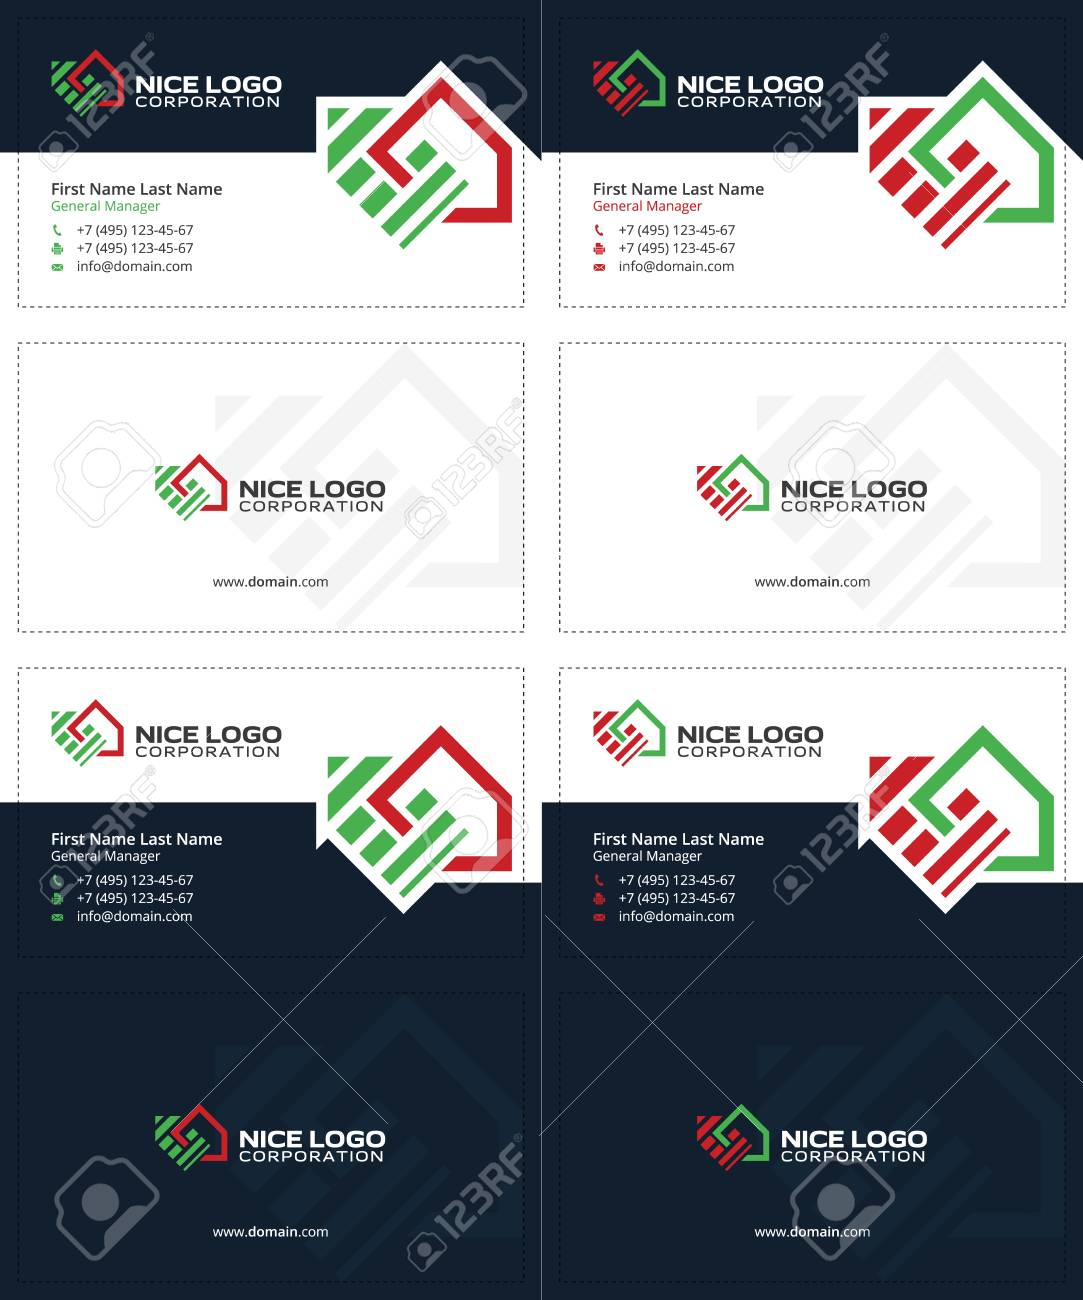 Auction and real estate business cards dark blue green and auction and real estate business cards dark blue green and red colors house reheart Image collections